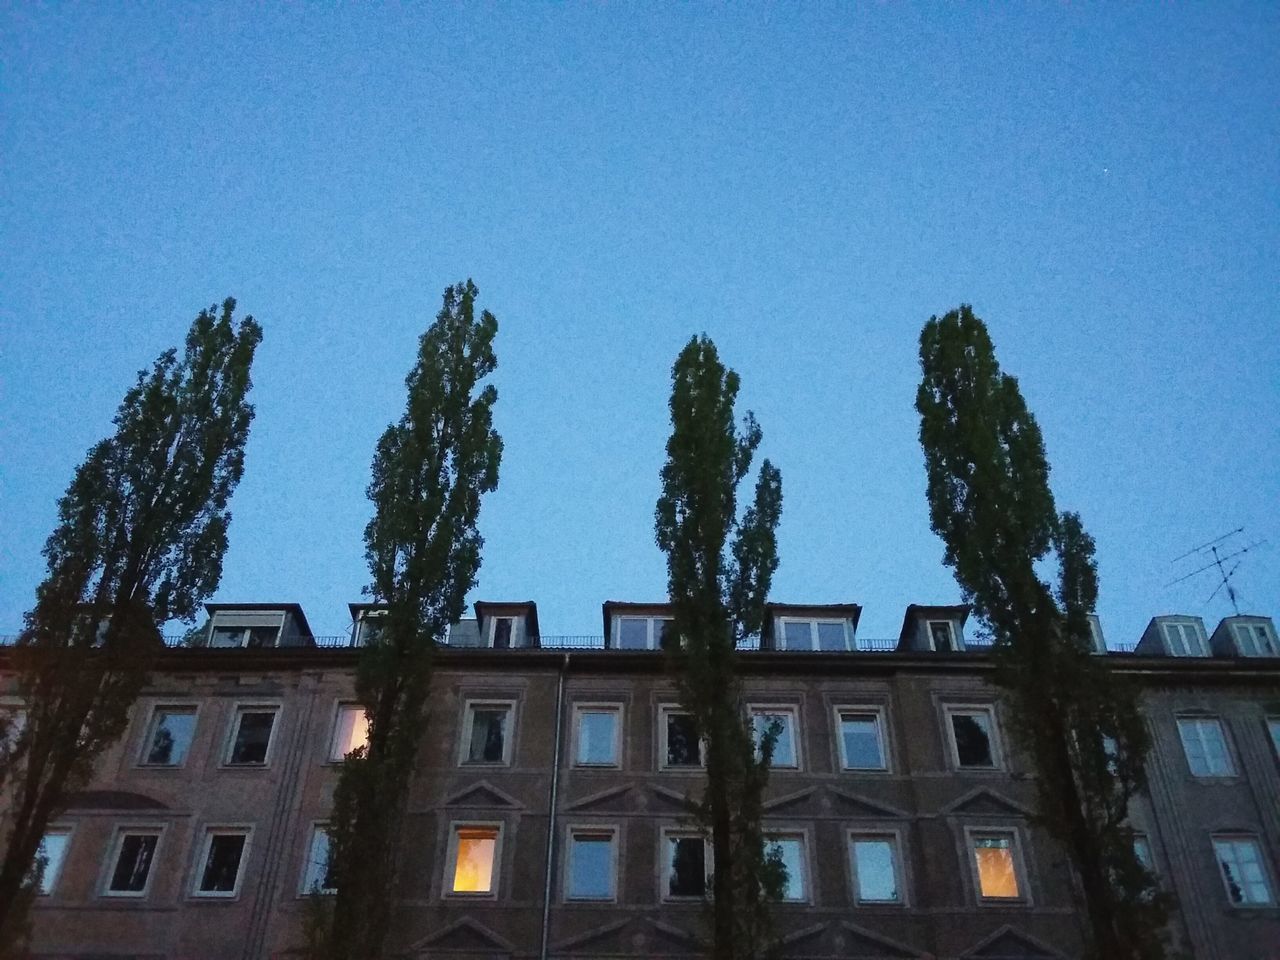 residential building behind poplars. · Munich München germany buildings Architecture urban landscape poplar Trees trees and sky tree crowns dusk nightfall blue Light apartment lights